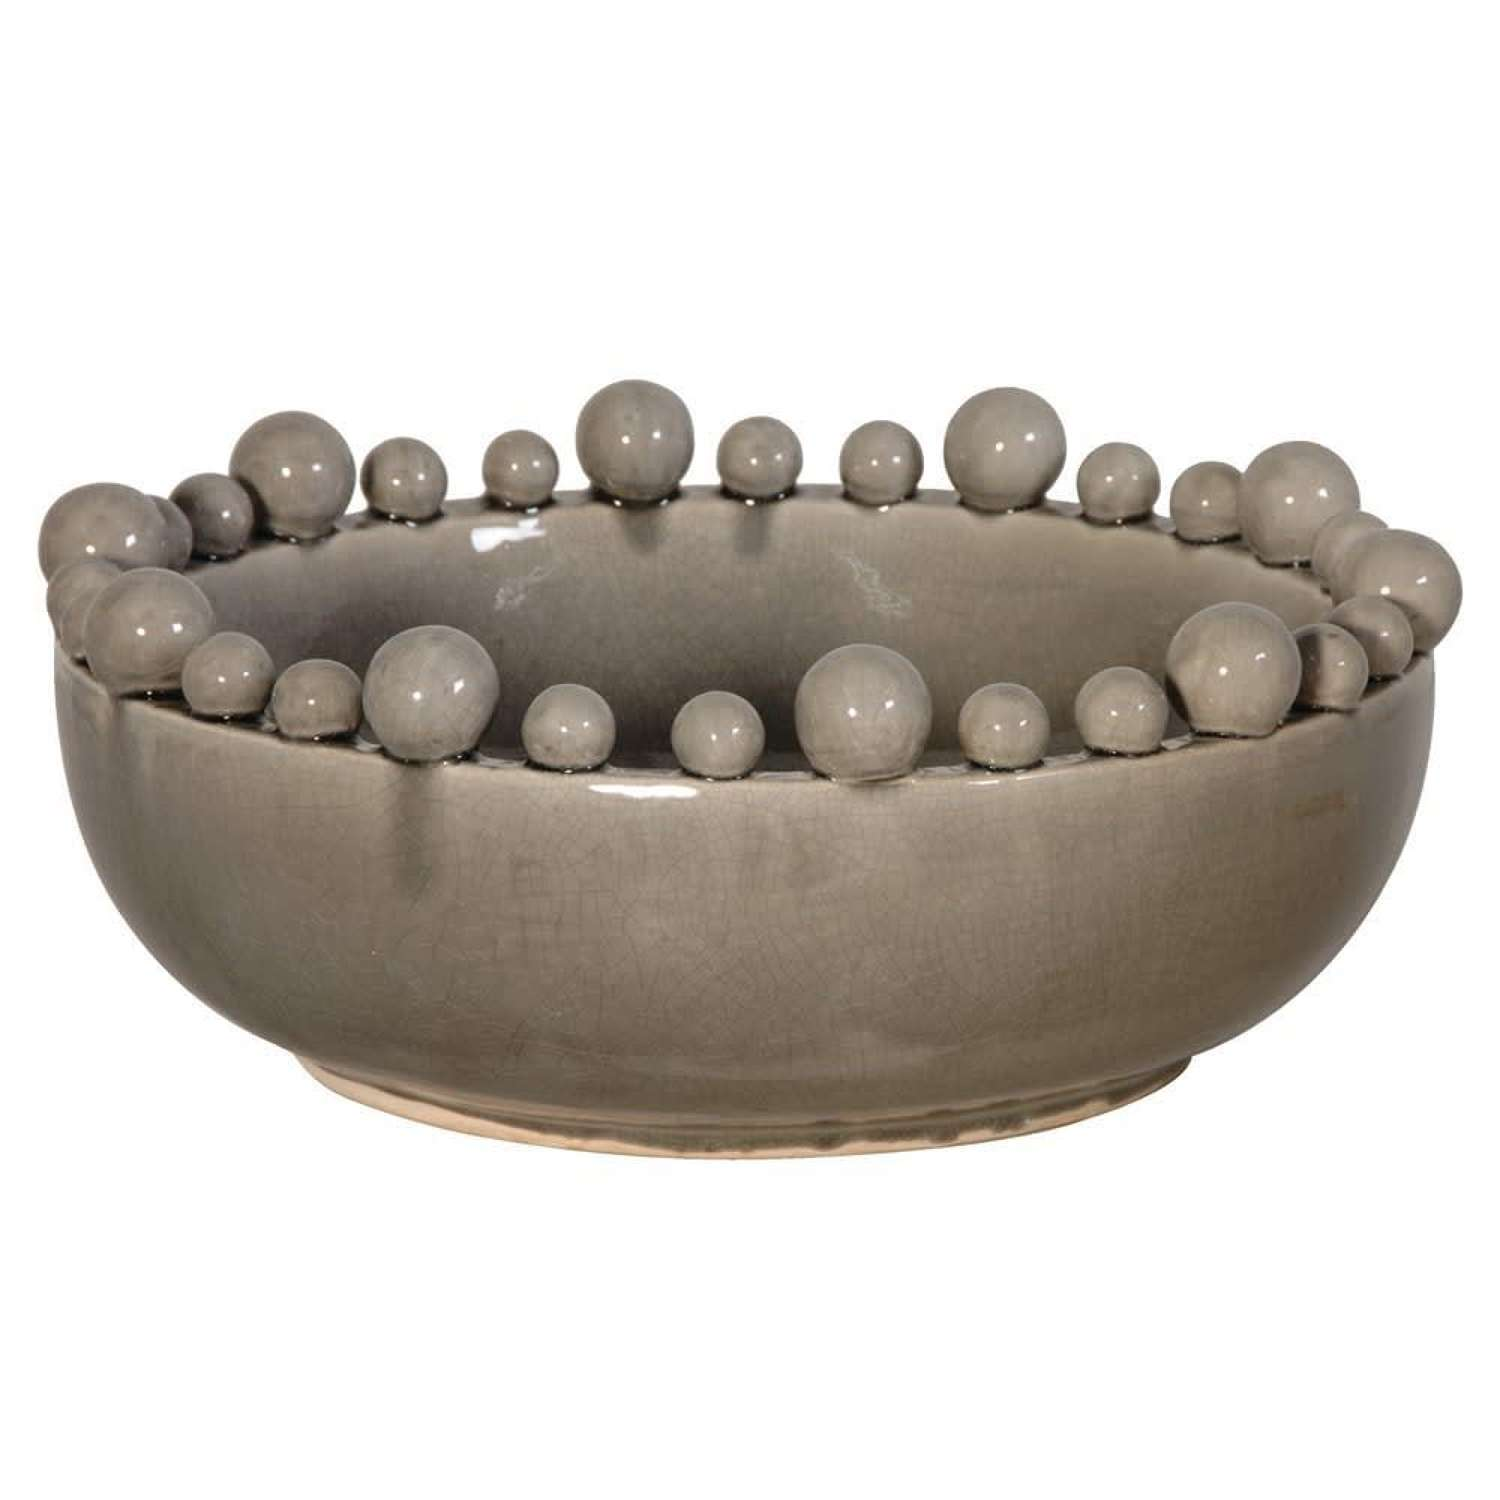 Ceramic Bowl with Ball Rim - Grey